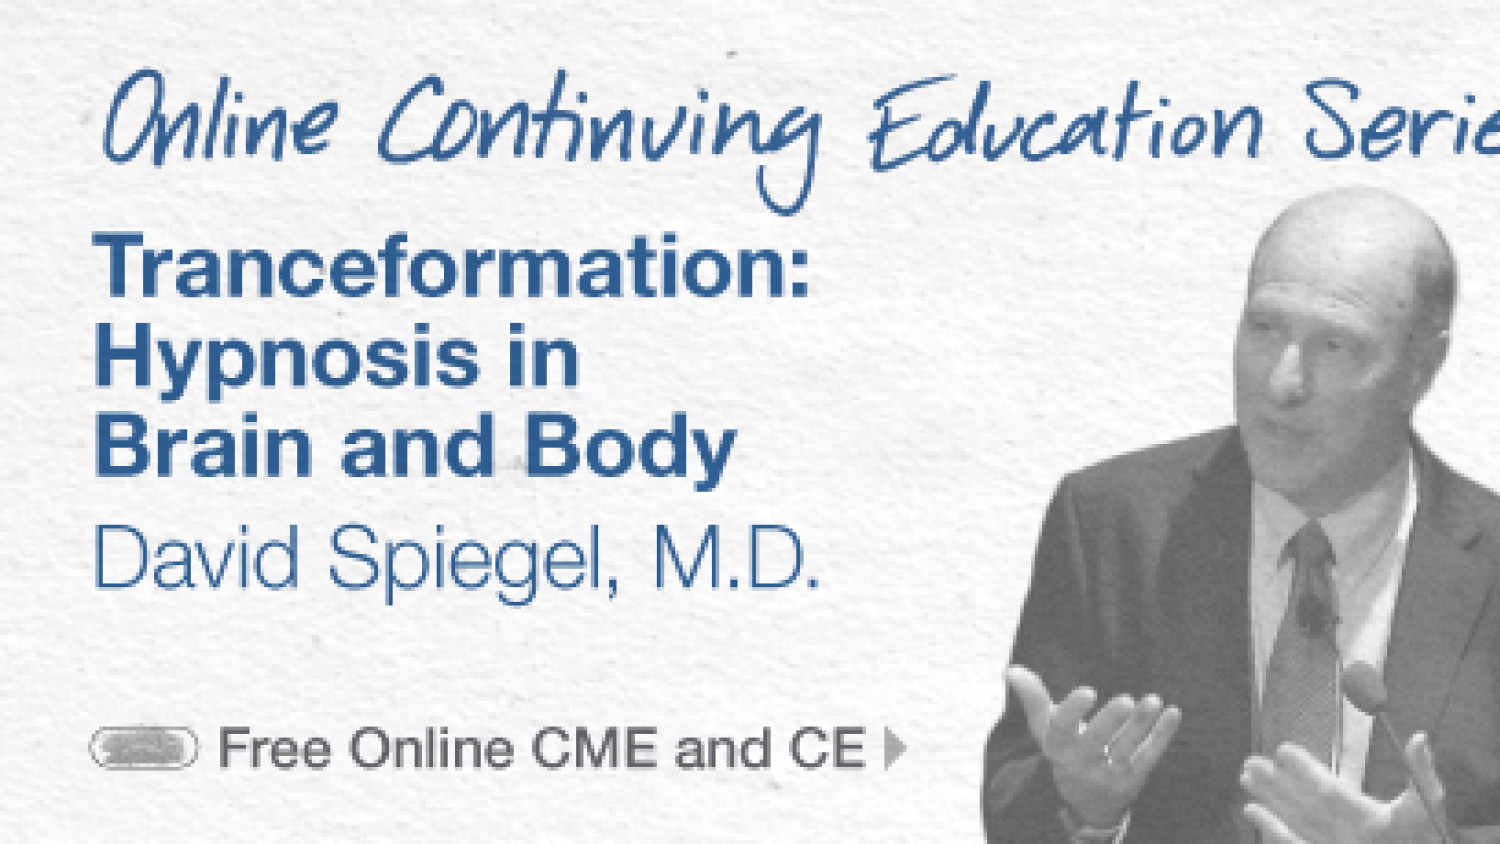 Online continuing Education Series—Tranceformation: Hypnosis in Brain and Body; David Spiegel, M.D. (Free Online CME and CE)